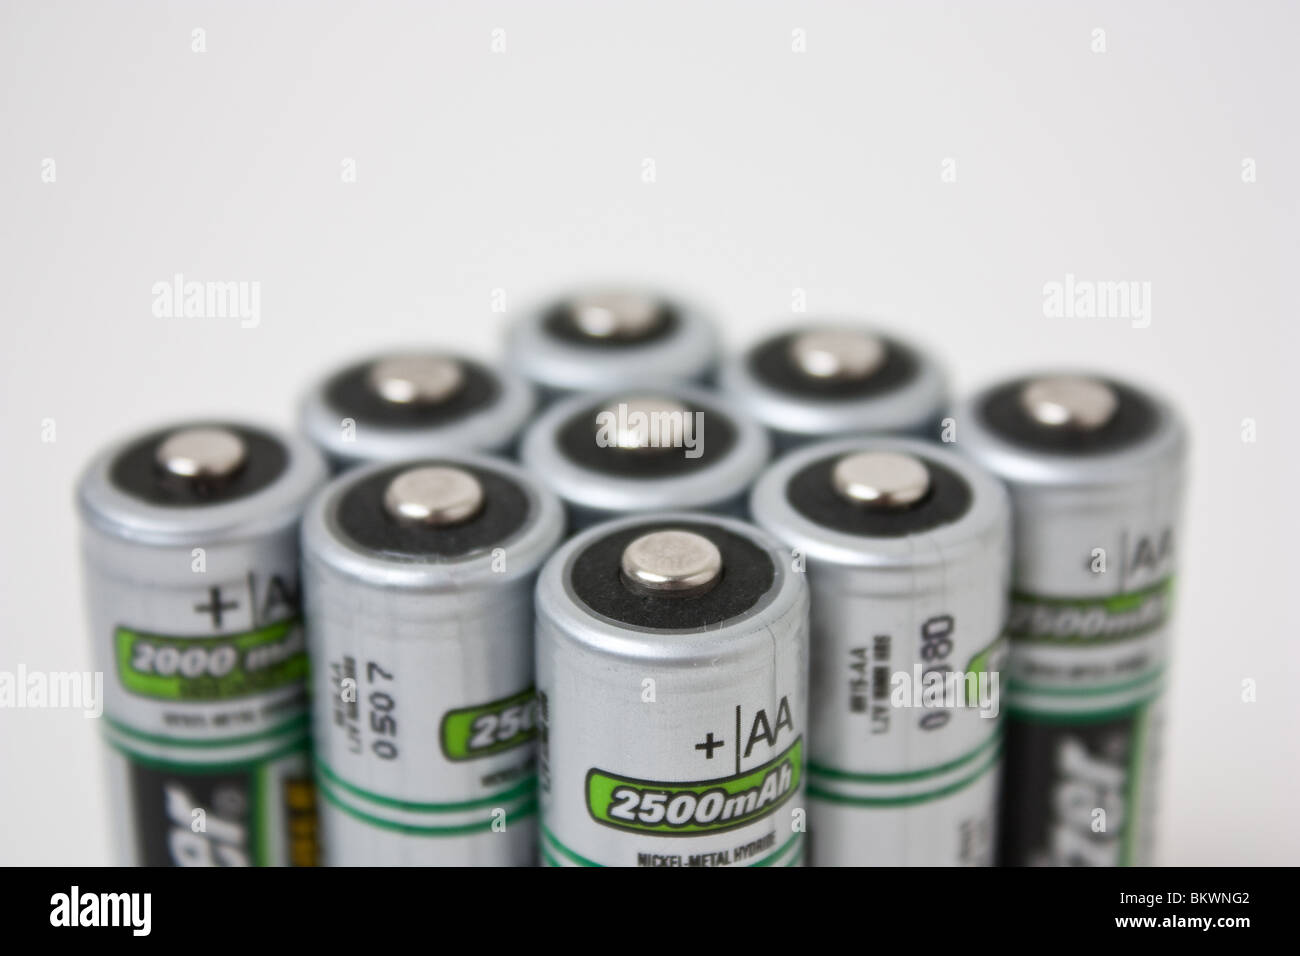 rechargeable batteries stock photos rechargeable. Black Bedroom Furniture Sets. Home Design Ideas